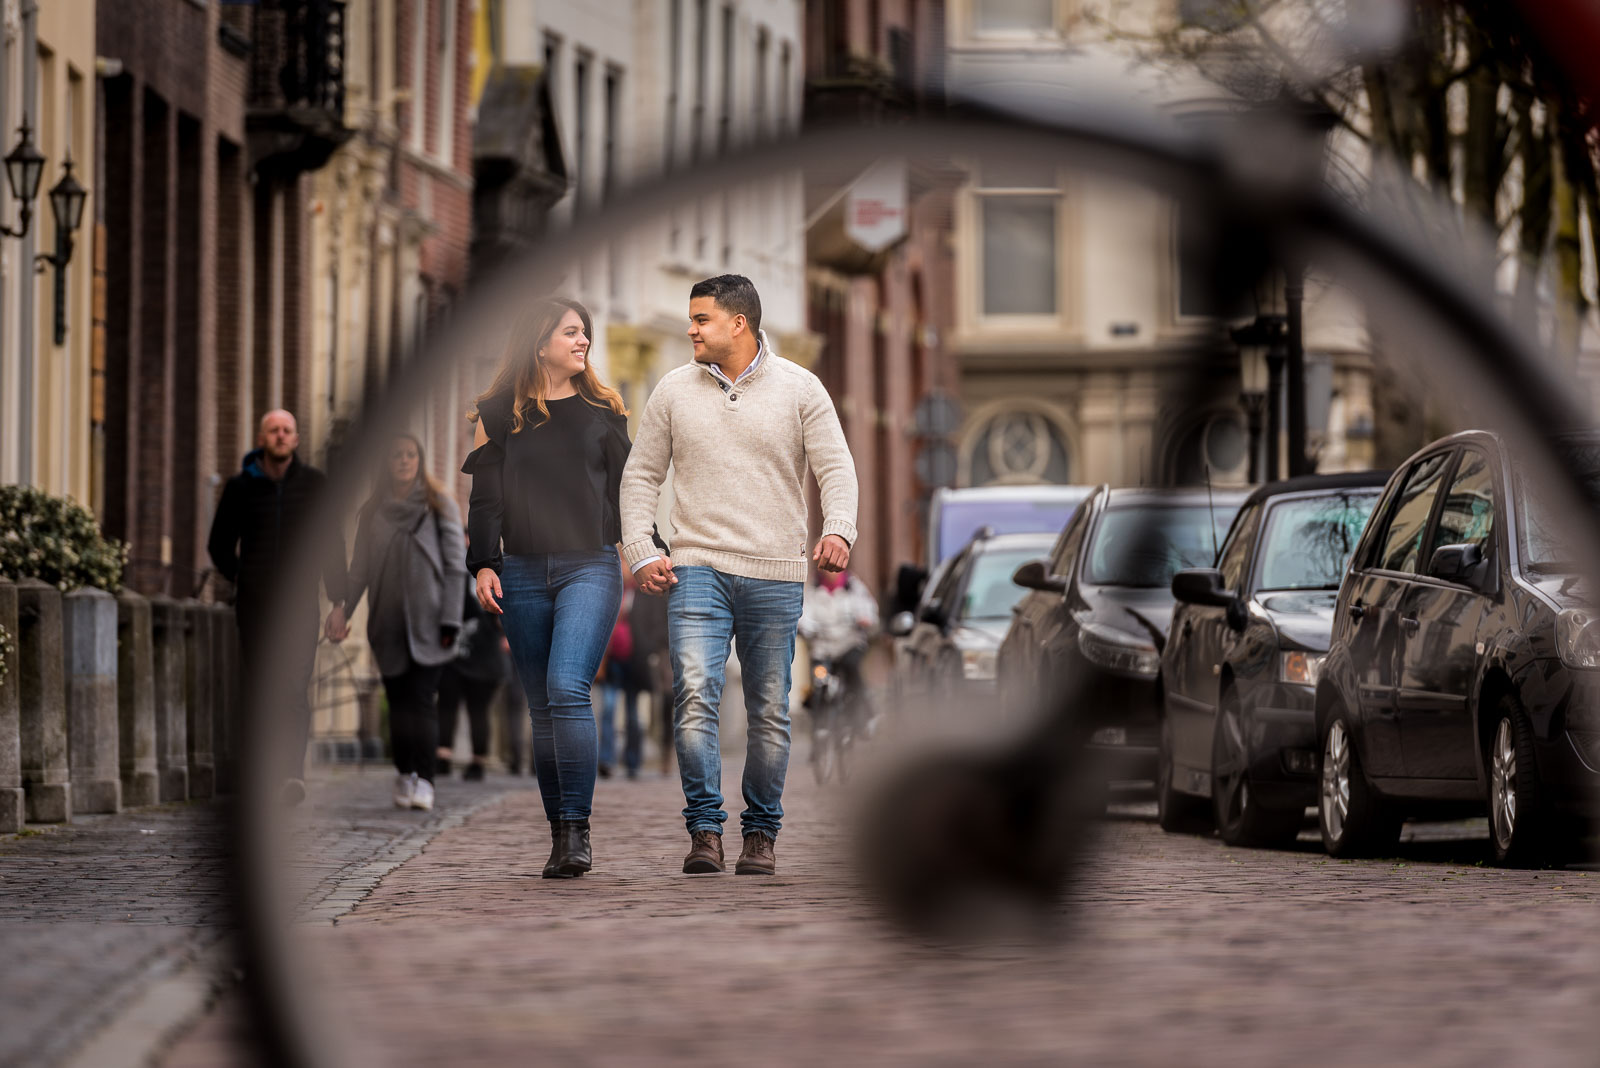 Loveshoot gracht centrum utrecht